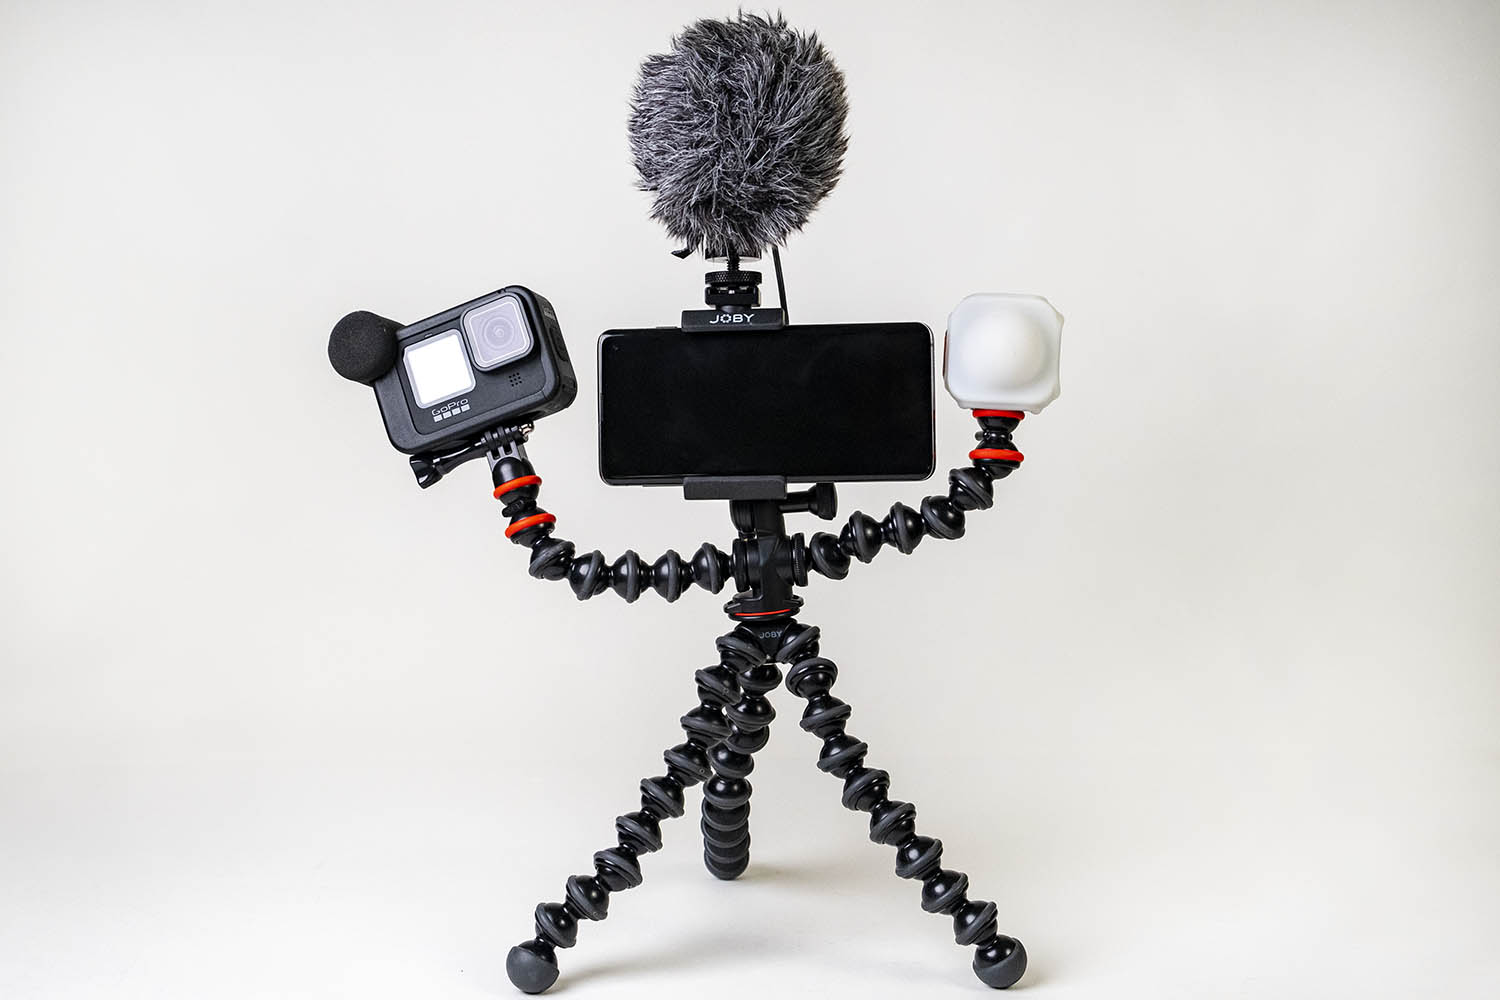 Joby Mobile Vlogging Kit review